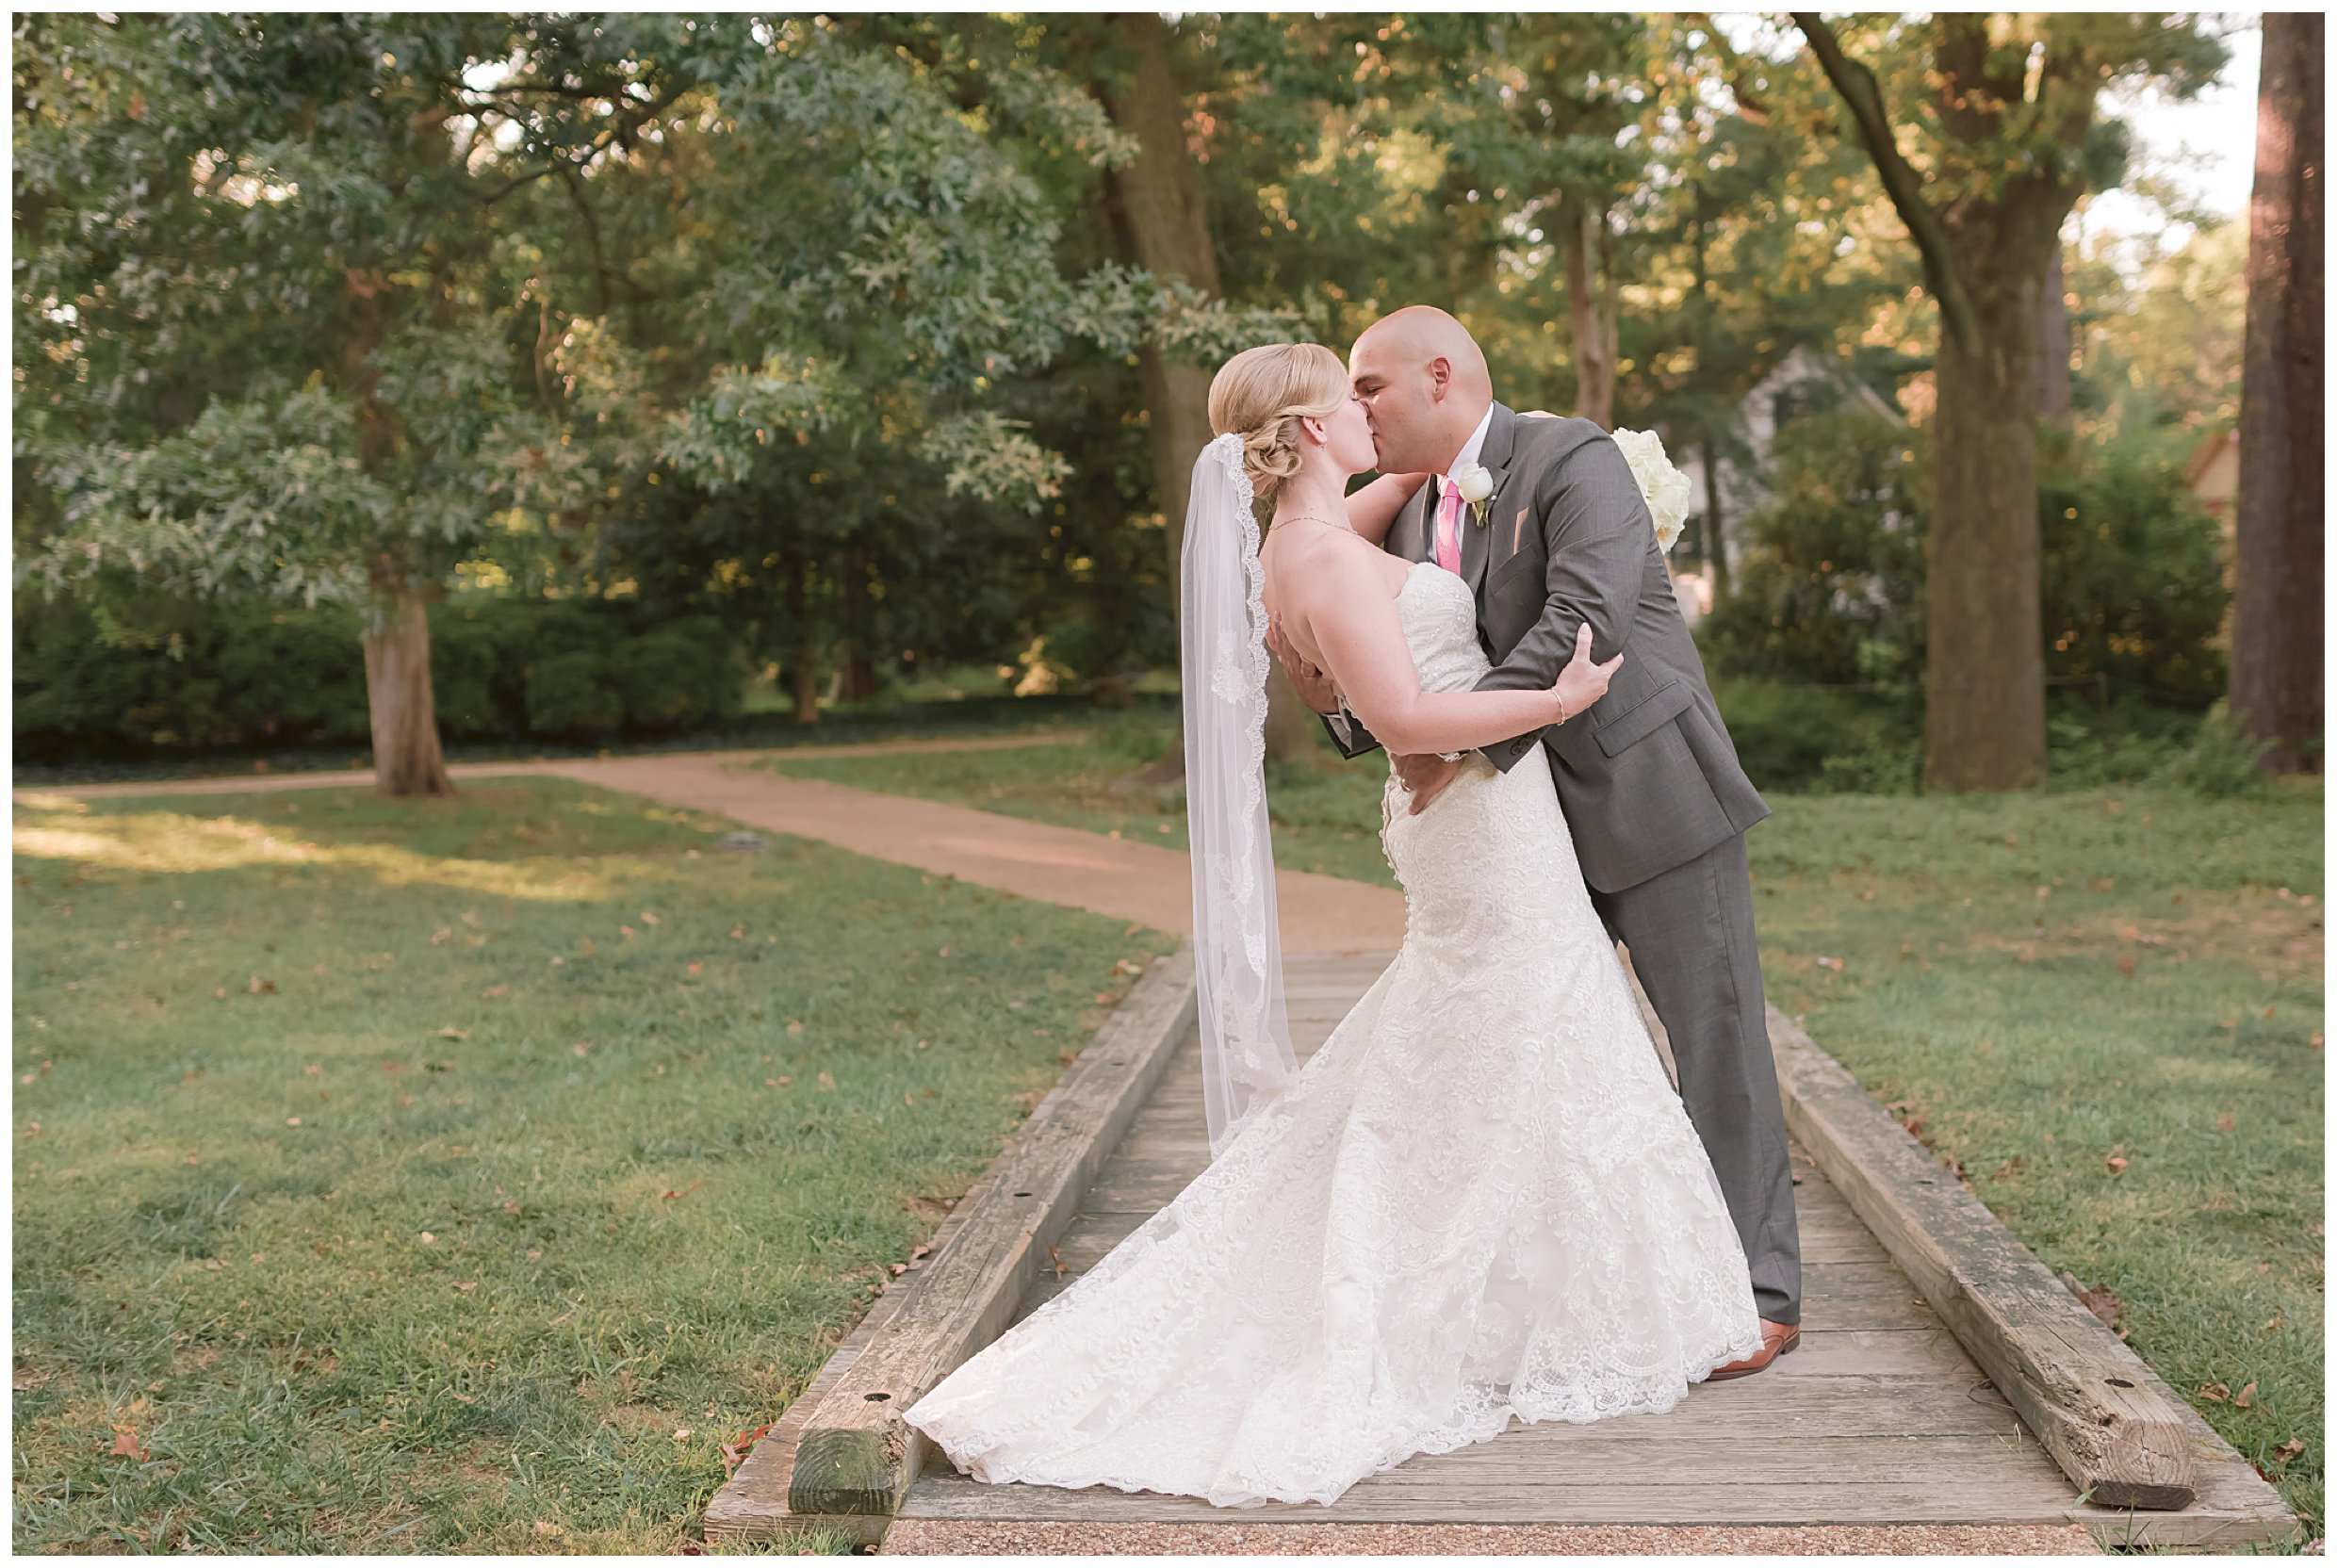 Jose-and-Jacqui-Hendry-house-arlington-virginia-wedding-photographer-charleston-south carolina-wedding-photographer-navy-blue-pink-sunset-wedding-outdoor-earthy-eco-friendly-photographer-viginia wedding--728.jpg